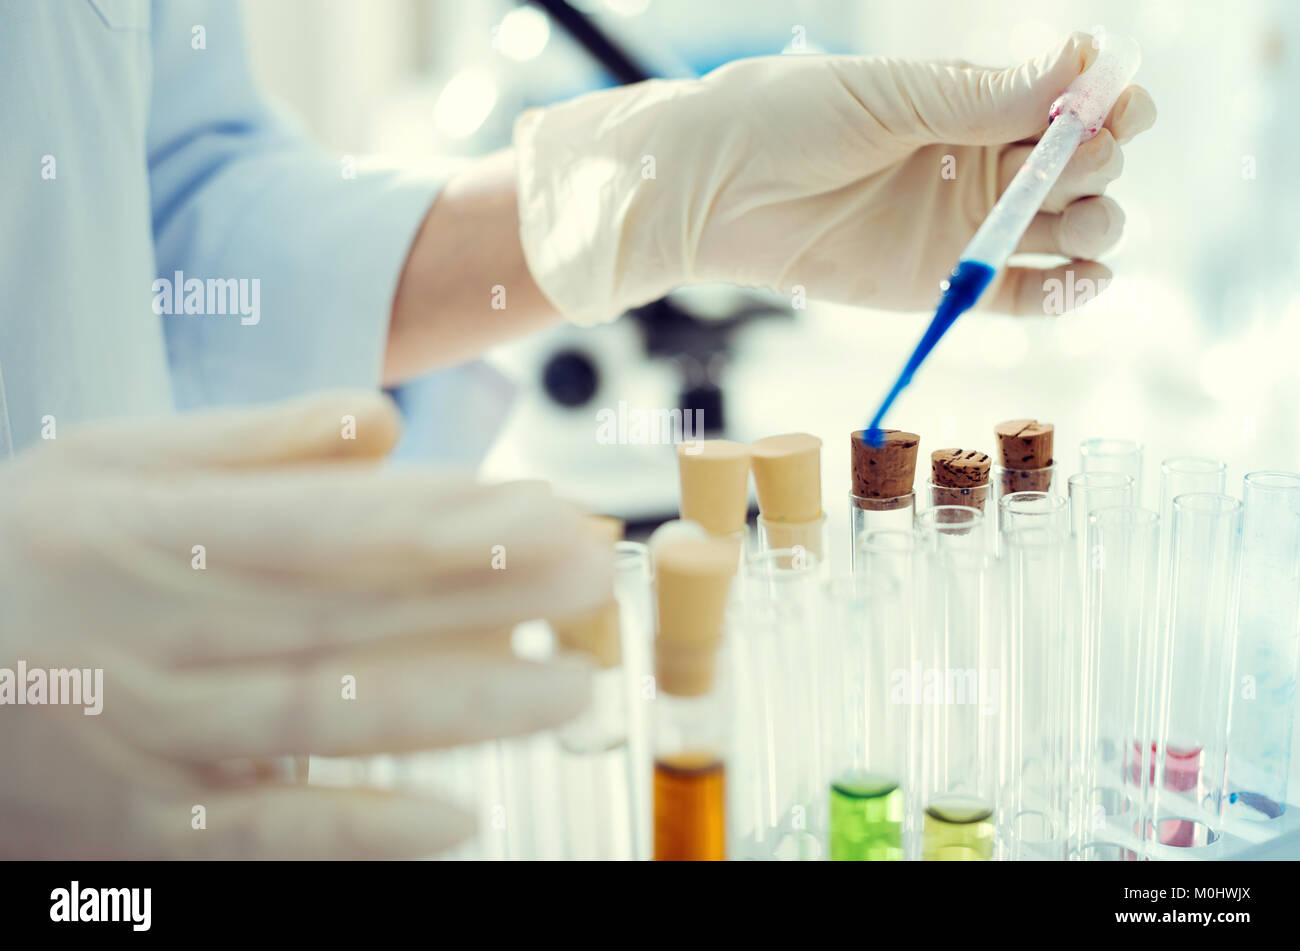 Lab worker using pipette while working with liquids - Stock Image